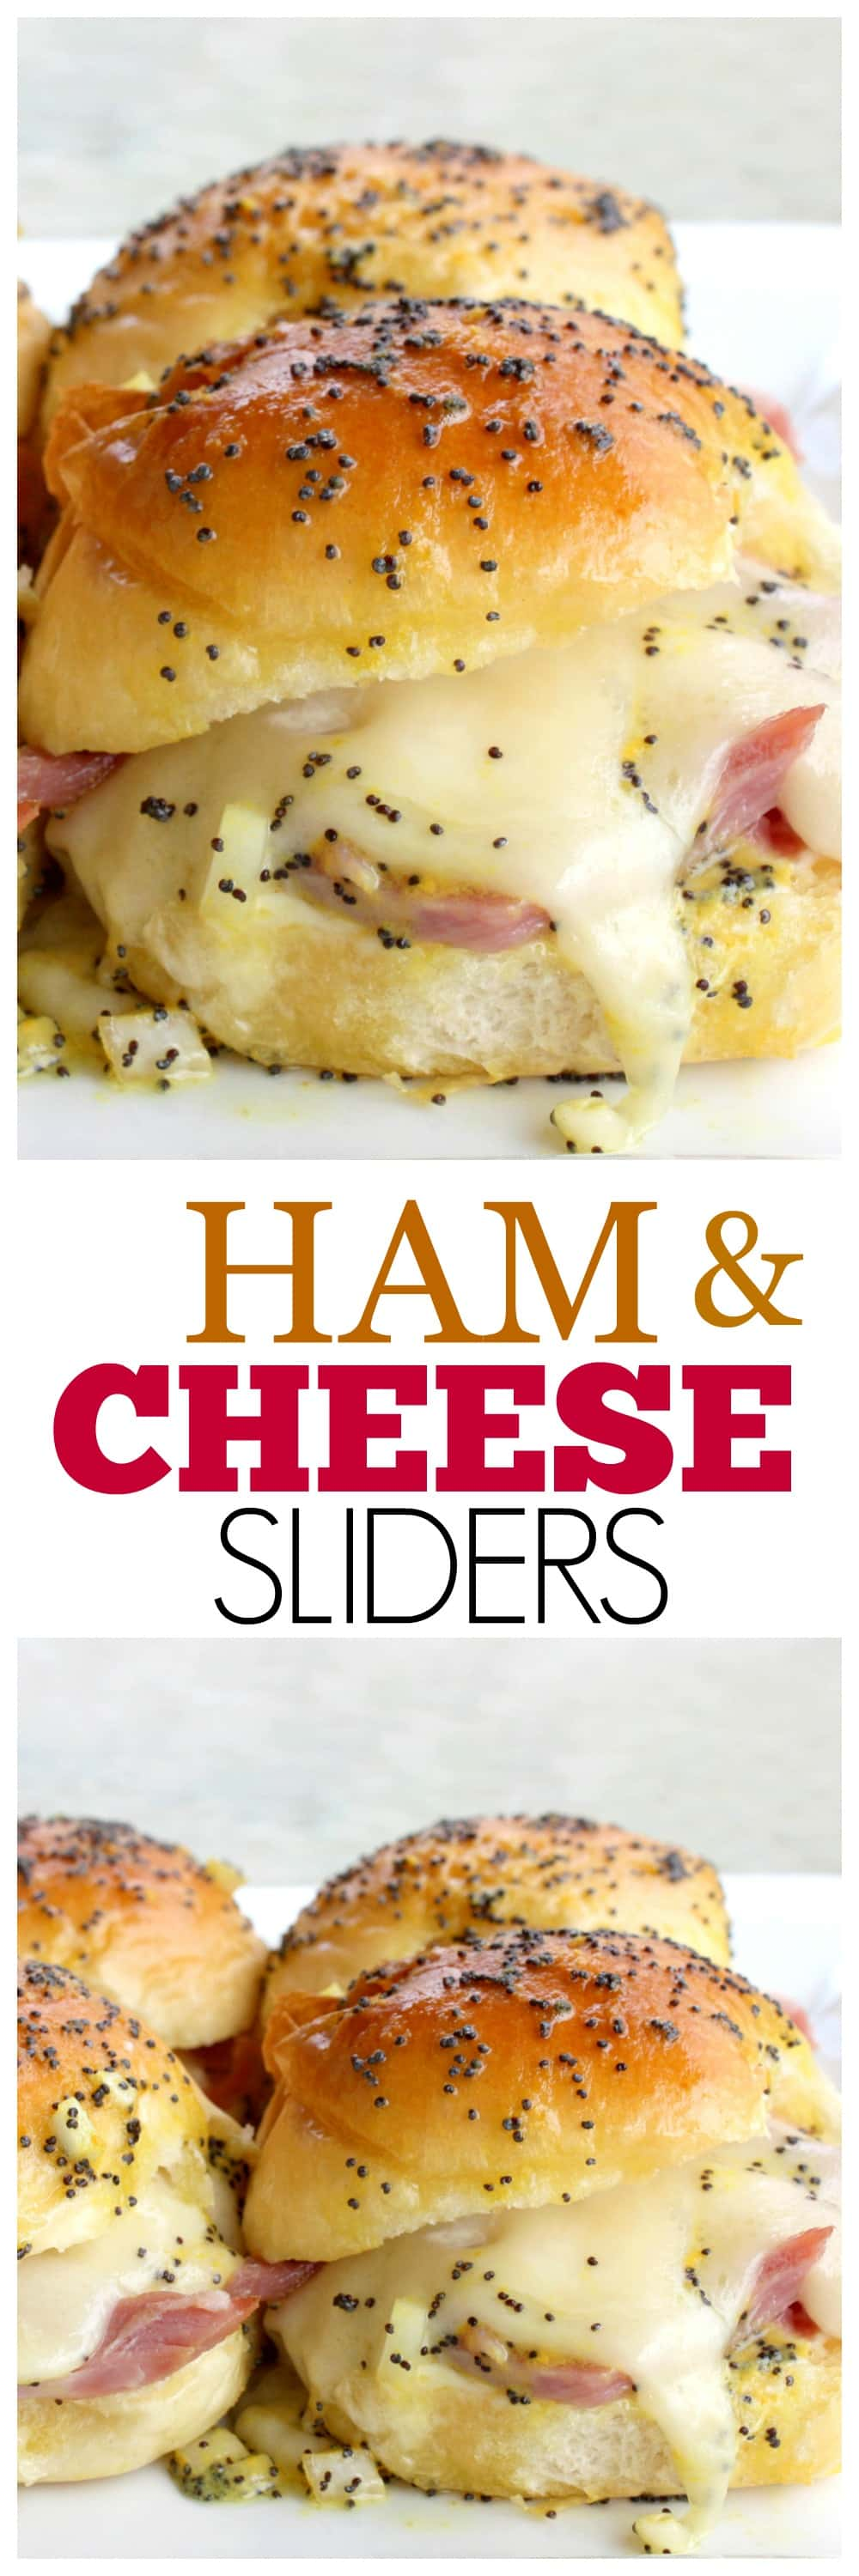 Ham and Cheese Sliders - easy and crowd pleasing sandwiches. #ham #cheese #sliders #sandwiches #potluck #recipe #dishes